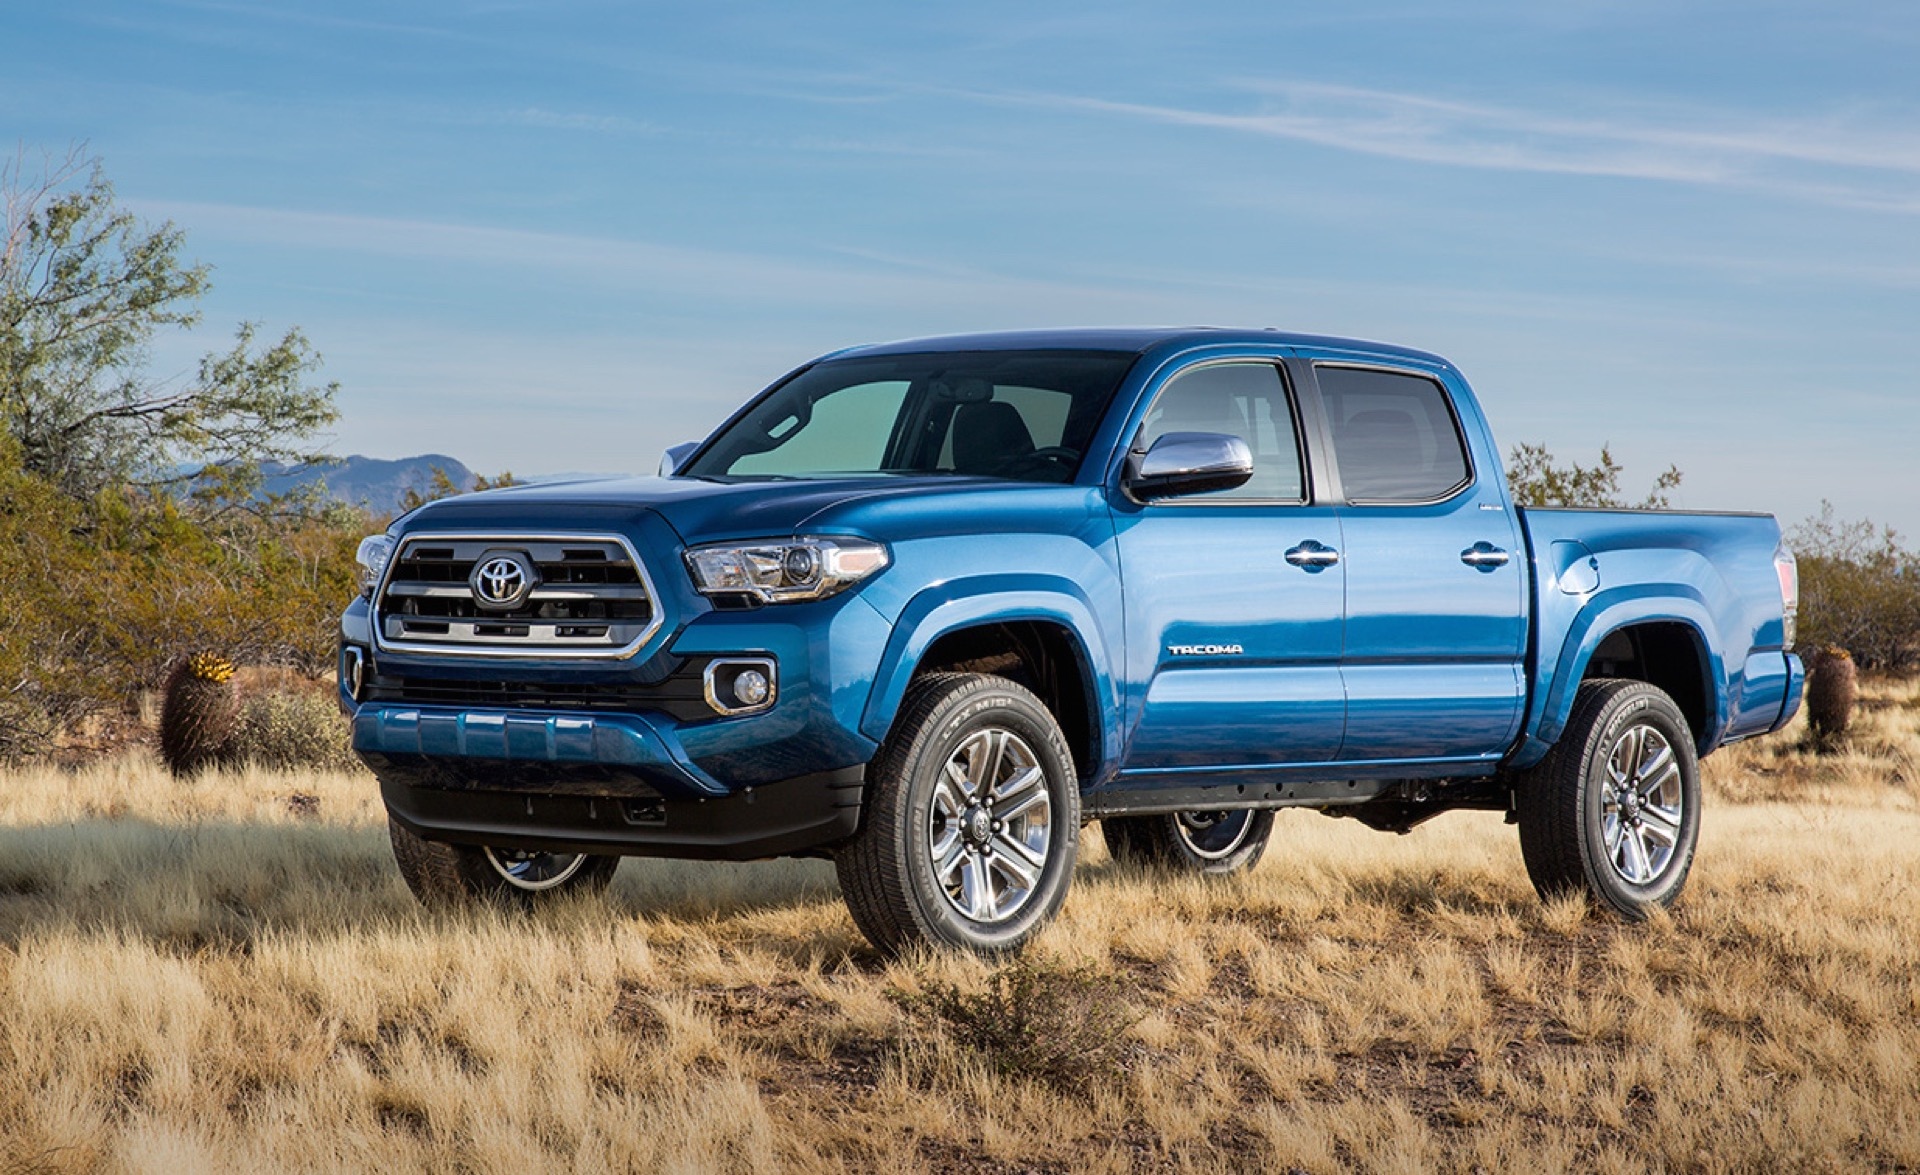 2016 toyota tacoma information and photos zombiedrive. Black Bedroom Furniture Sets. Home Design Ideas